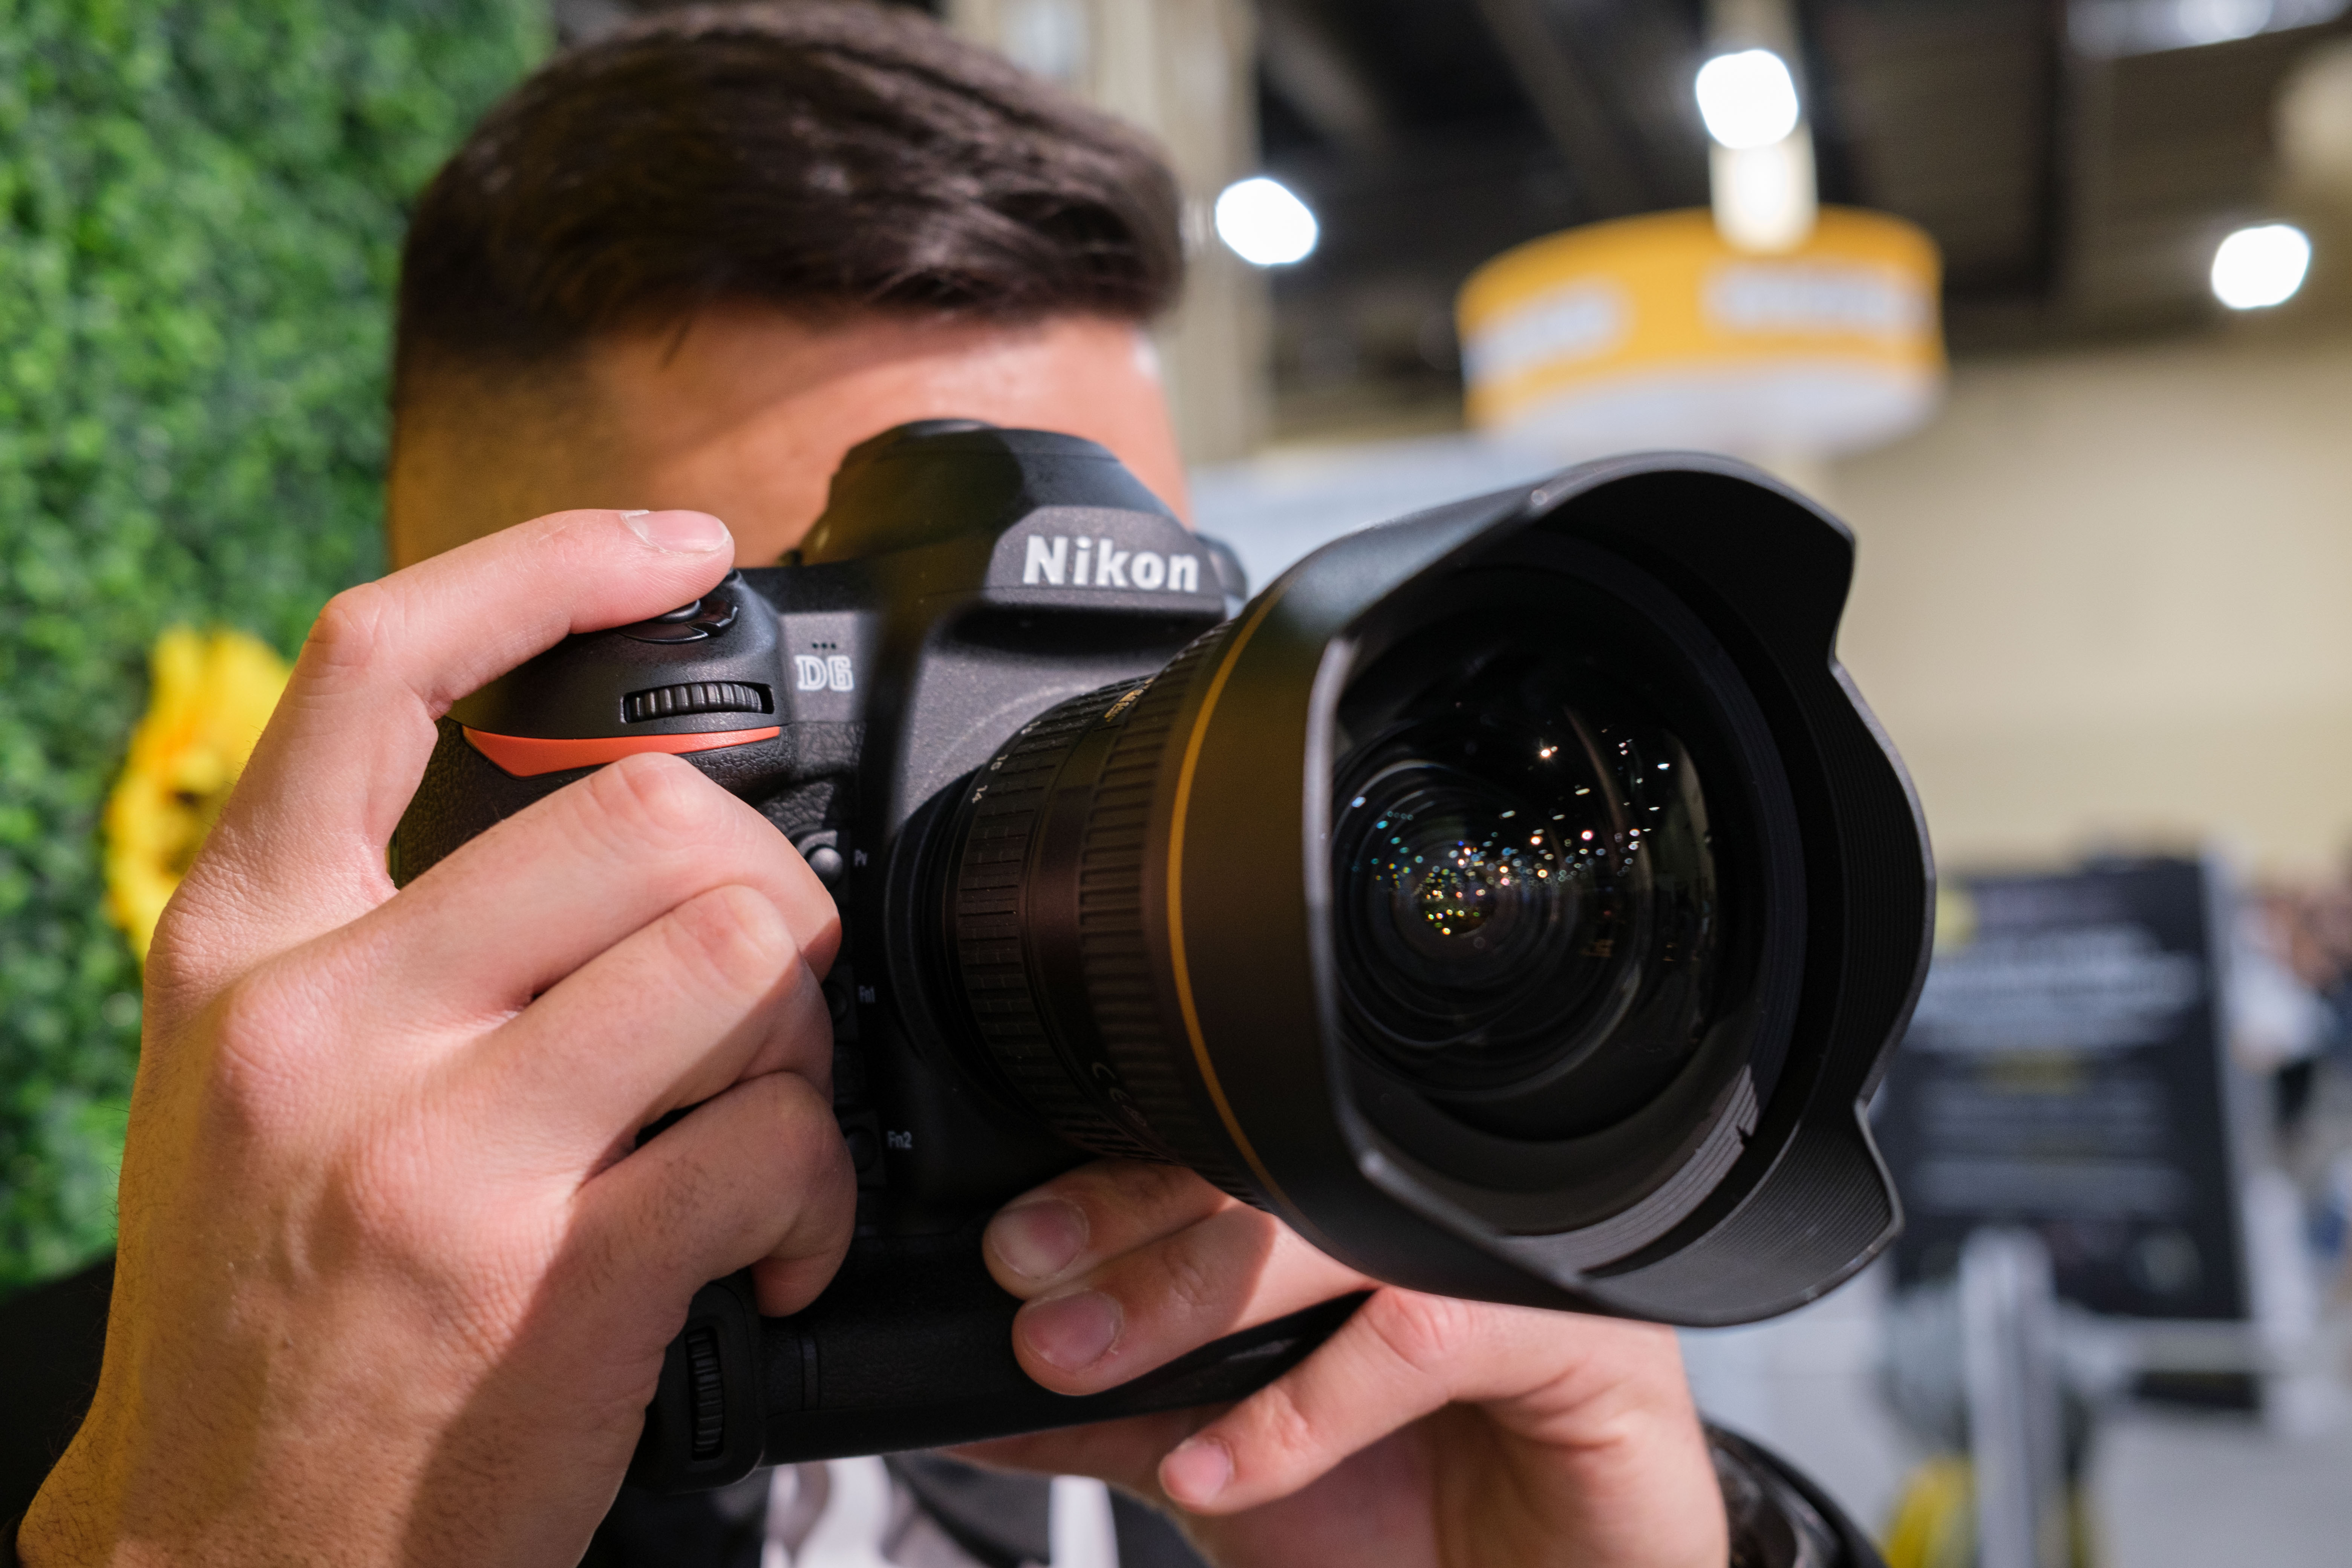 Nikon delays its D6 DSLR until May 2020, due to supplier issues caused by  COVID-19: Digital Photography Review